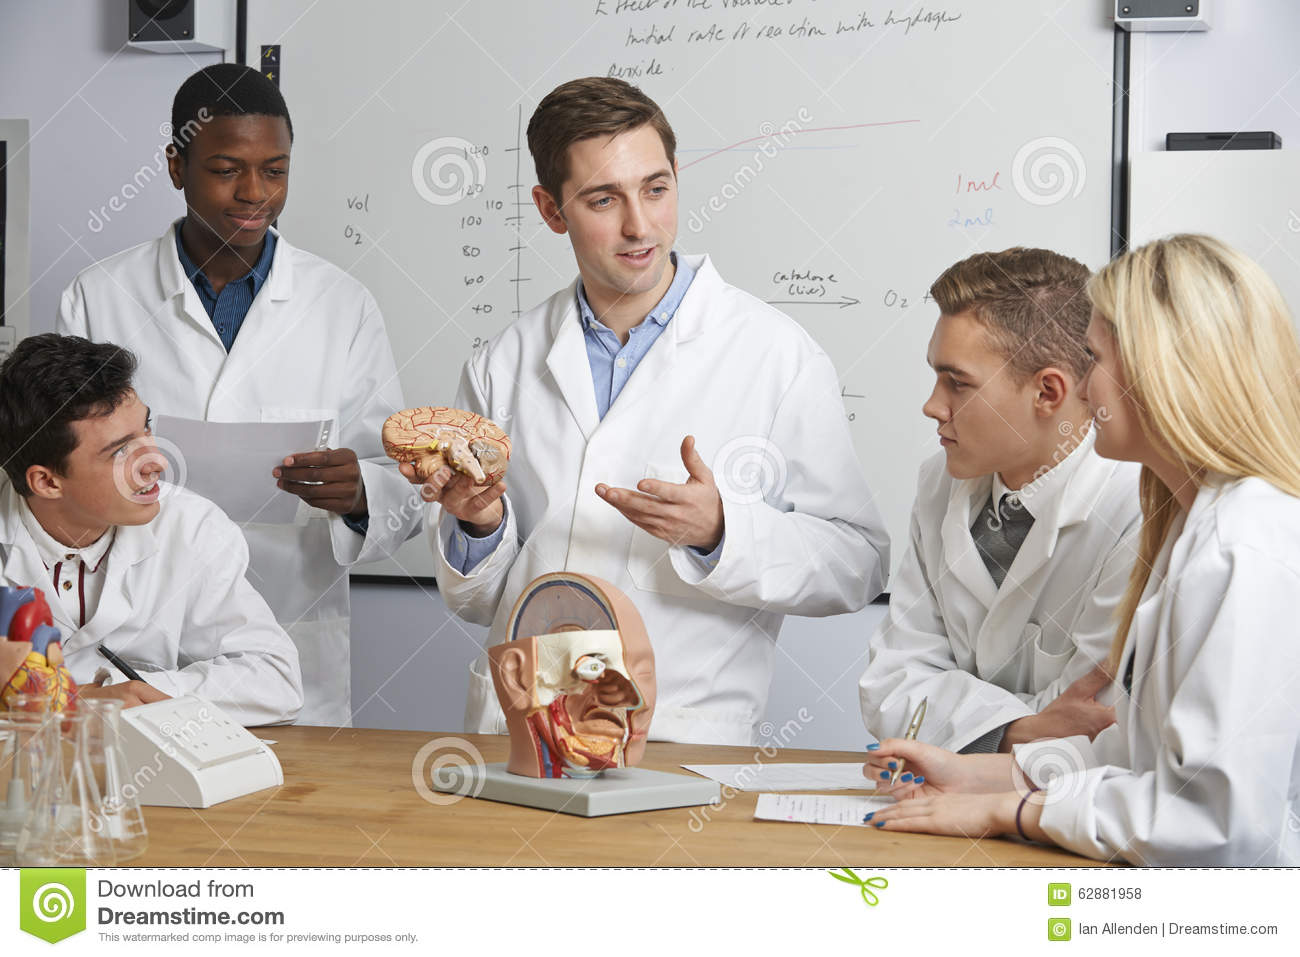 Teacher With Model Of Brain In Biology Class Stock Photo - Image of